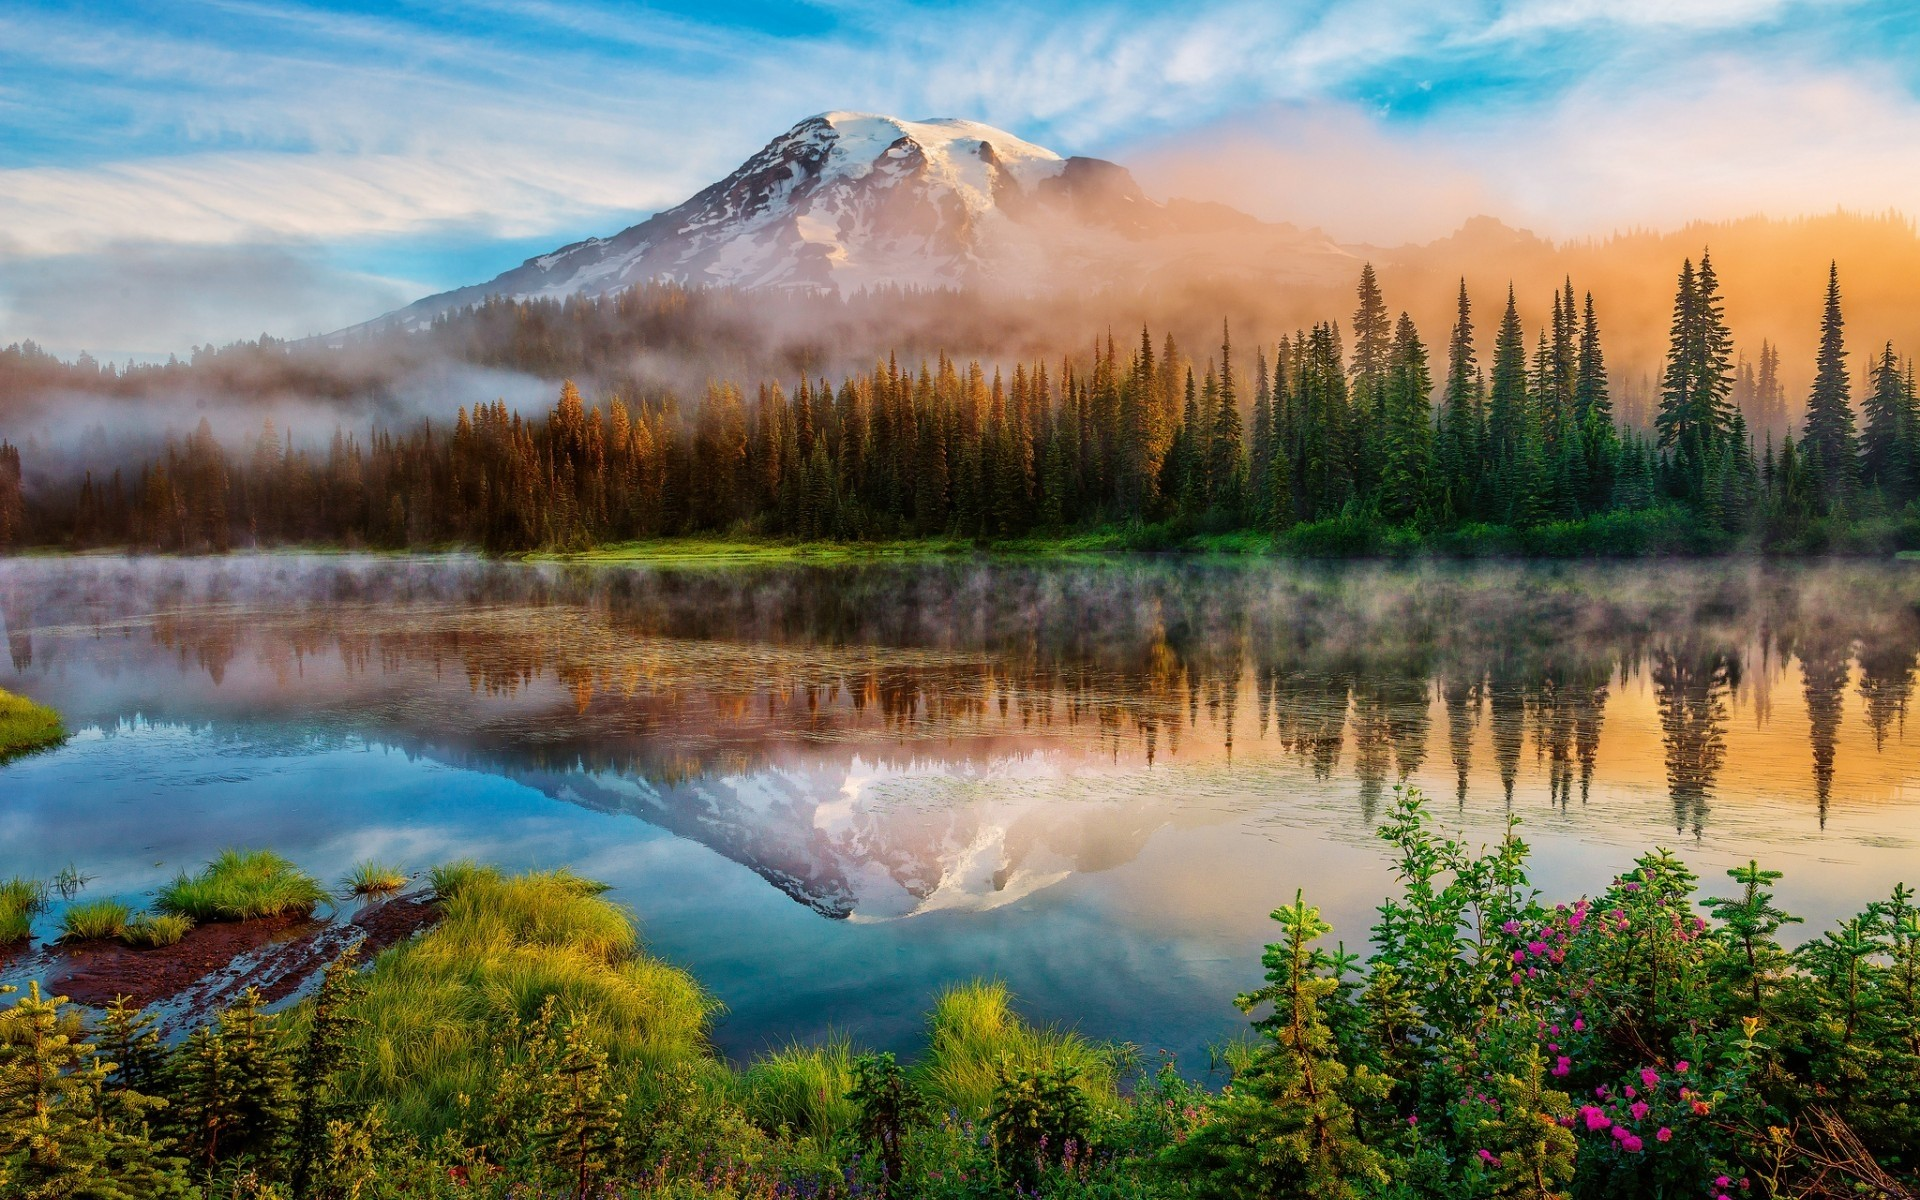 united states lake water landscape nature outdoors dawn reflection mountain travel scenic snow fall wood sky sunset mount rainier mountains